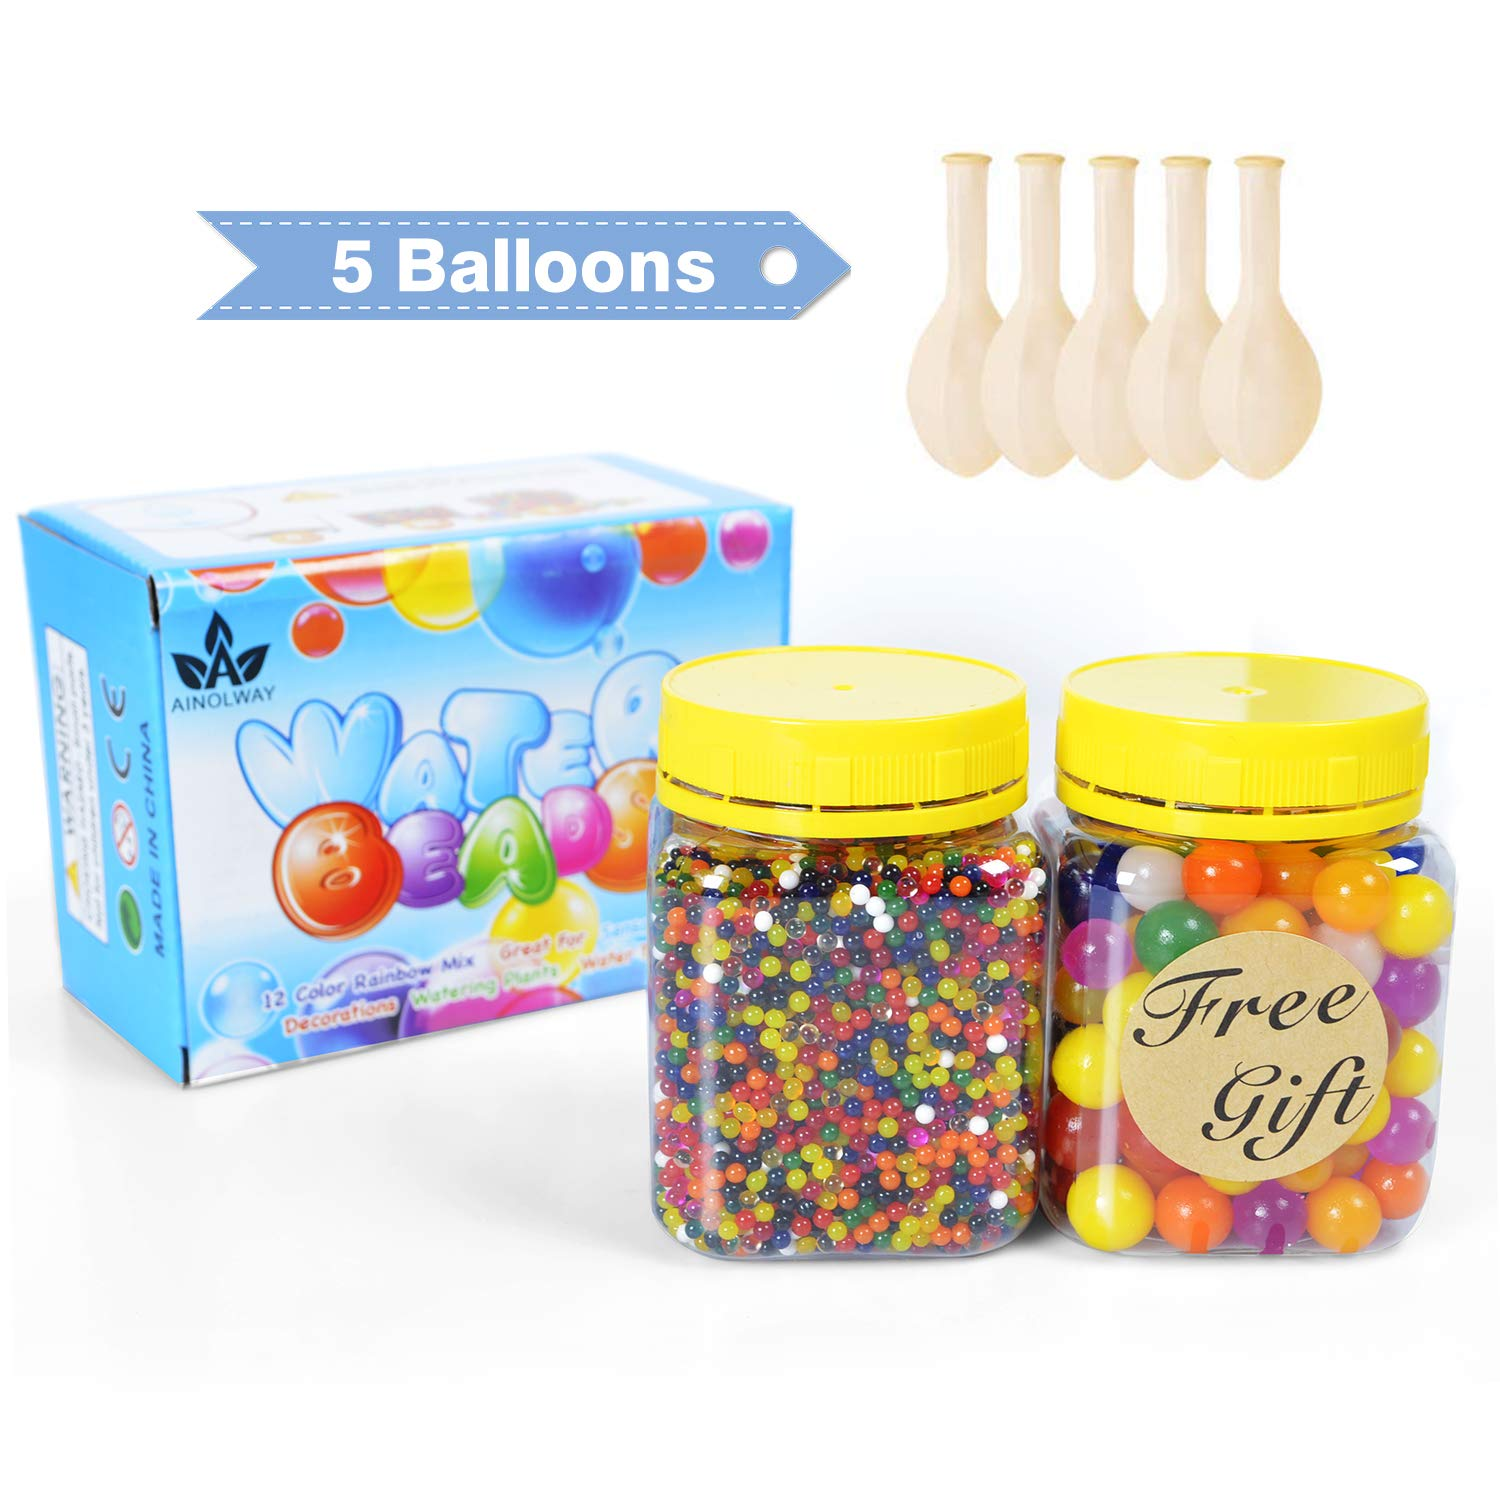 AINOLWAY Water Beads Pack Rainbow Mix for Orbies Spa Refill Kid Sensory Toys and Vase Décor 20000 Small Water Beads 100 Large Jumbo Water Beads 5 Balloons